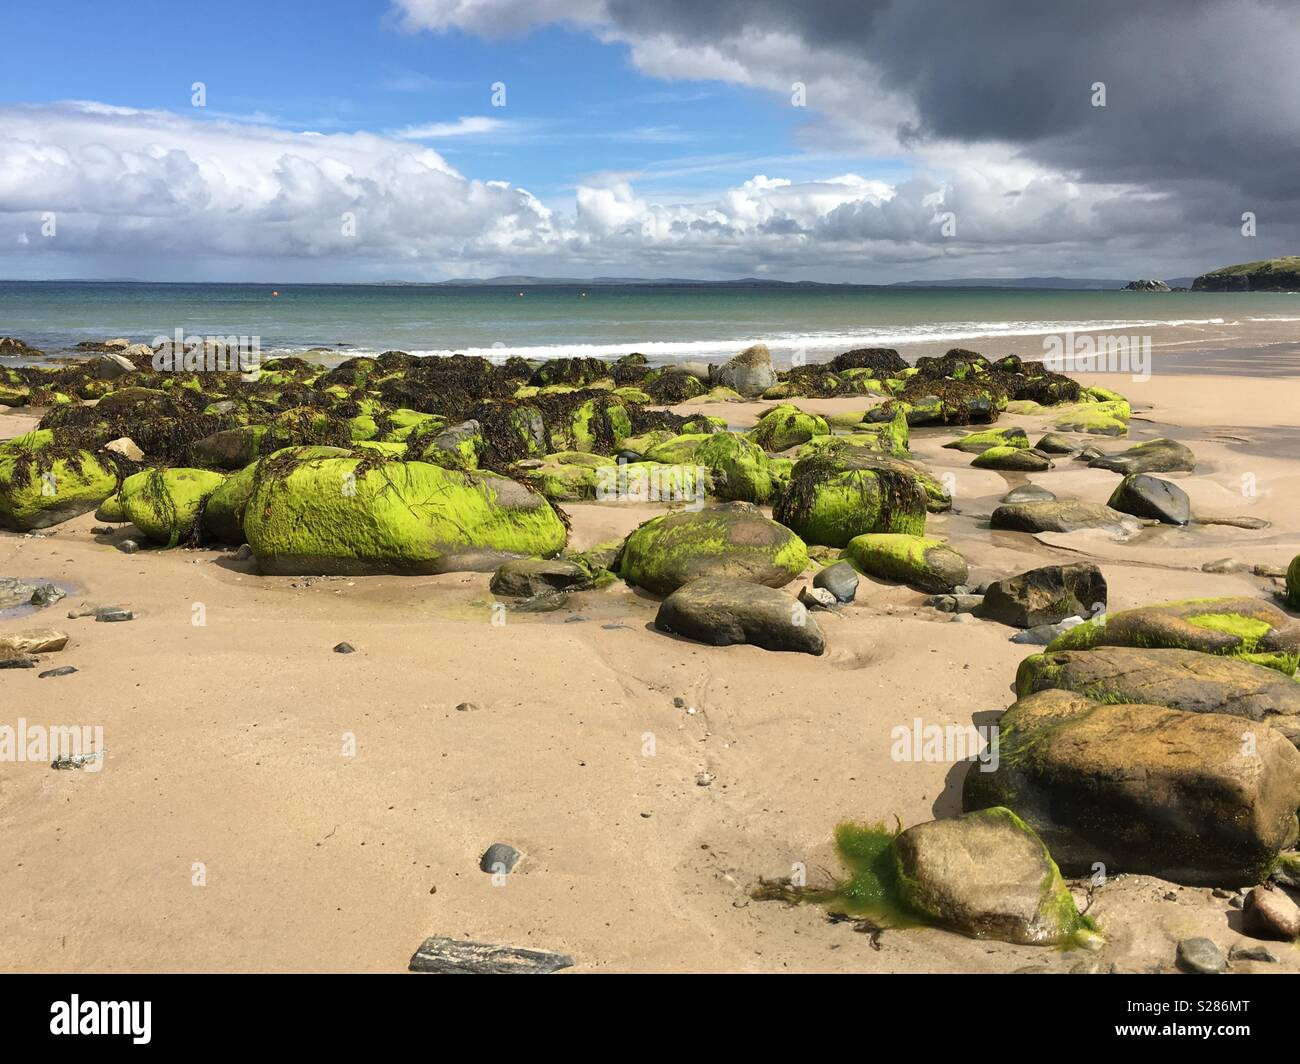 A beach with green covered rocks and a blue sky with black clouds on Achill Island, County Mayo, Ireland - Stock Image